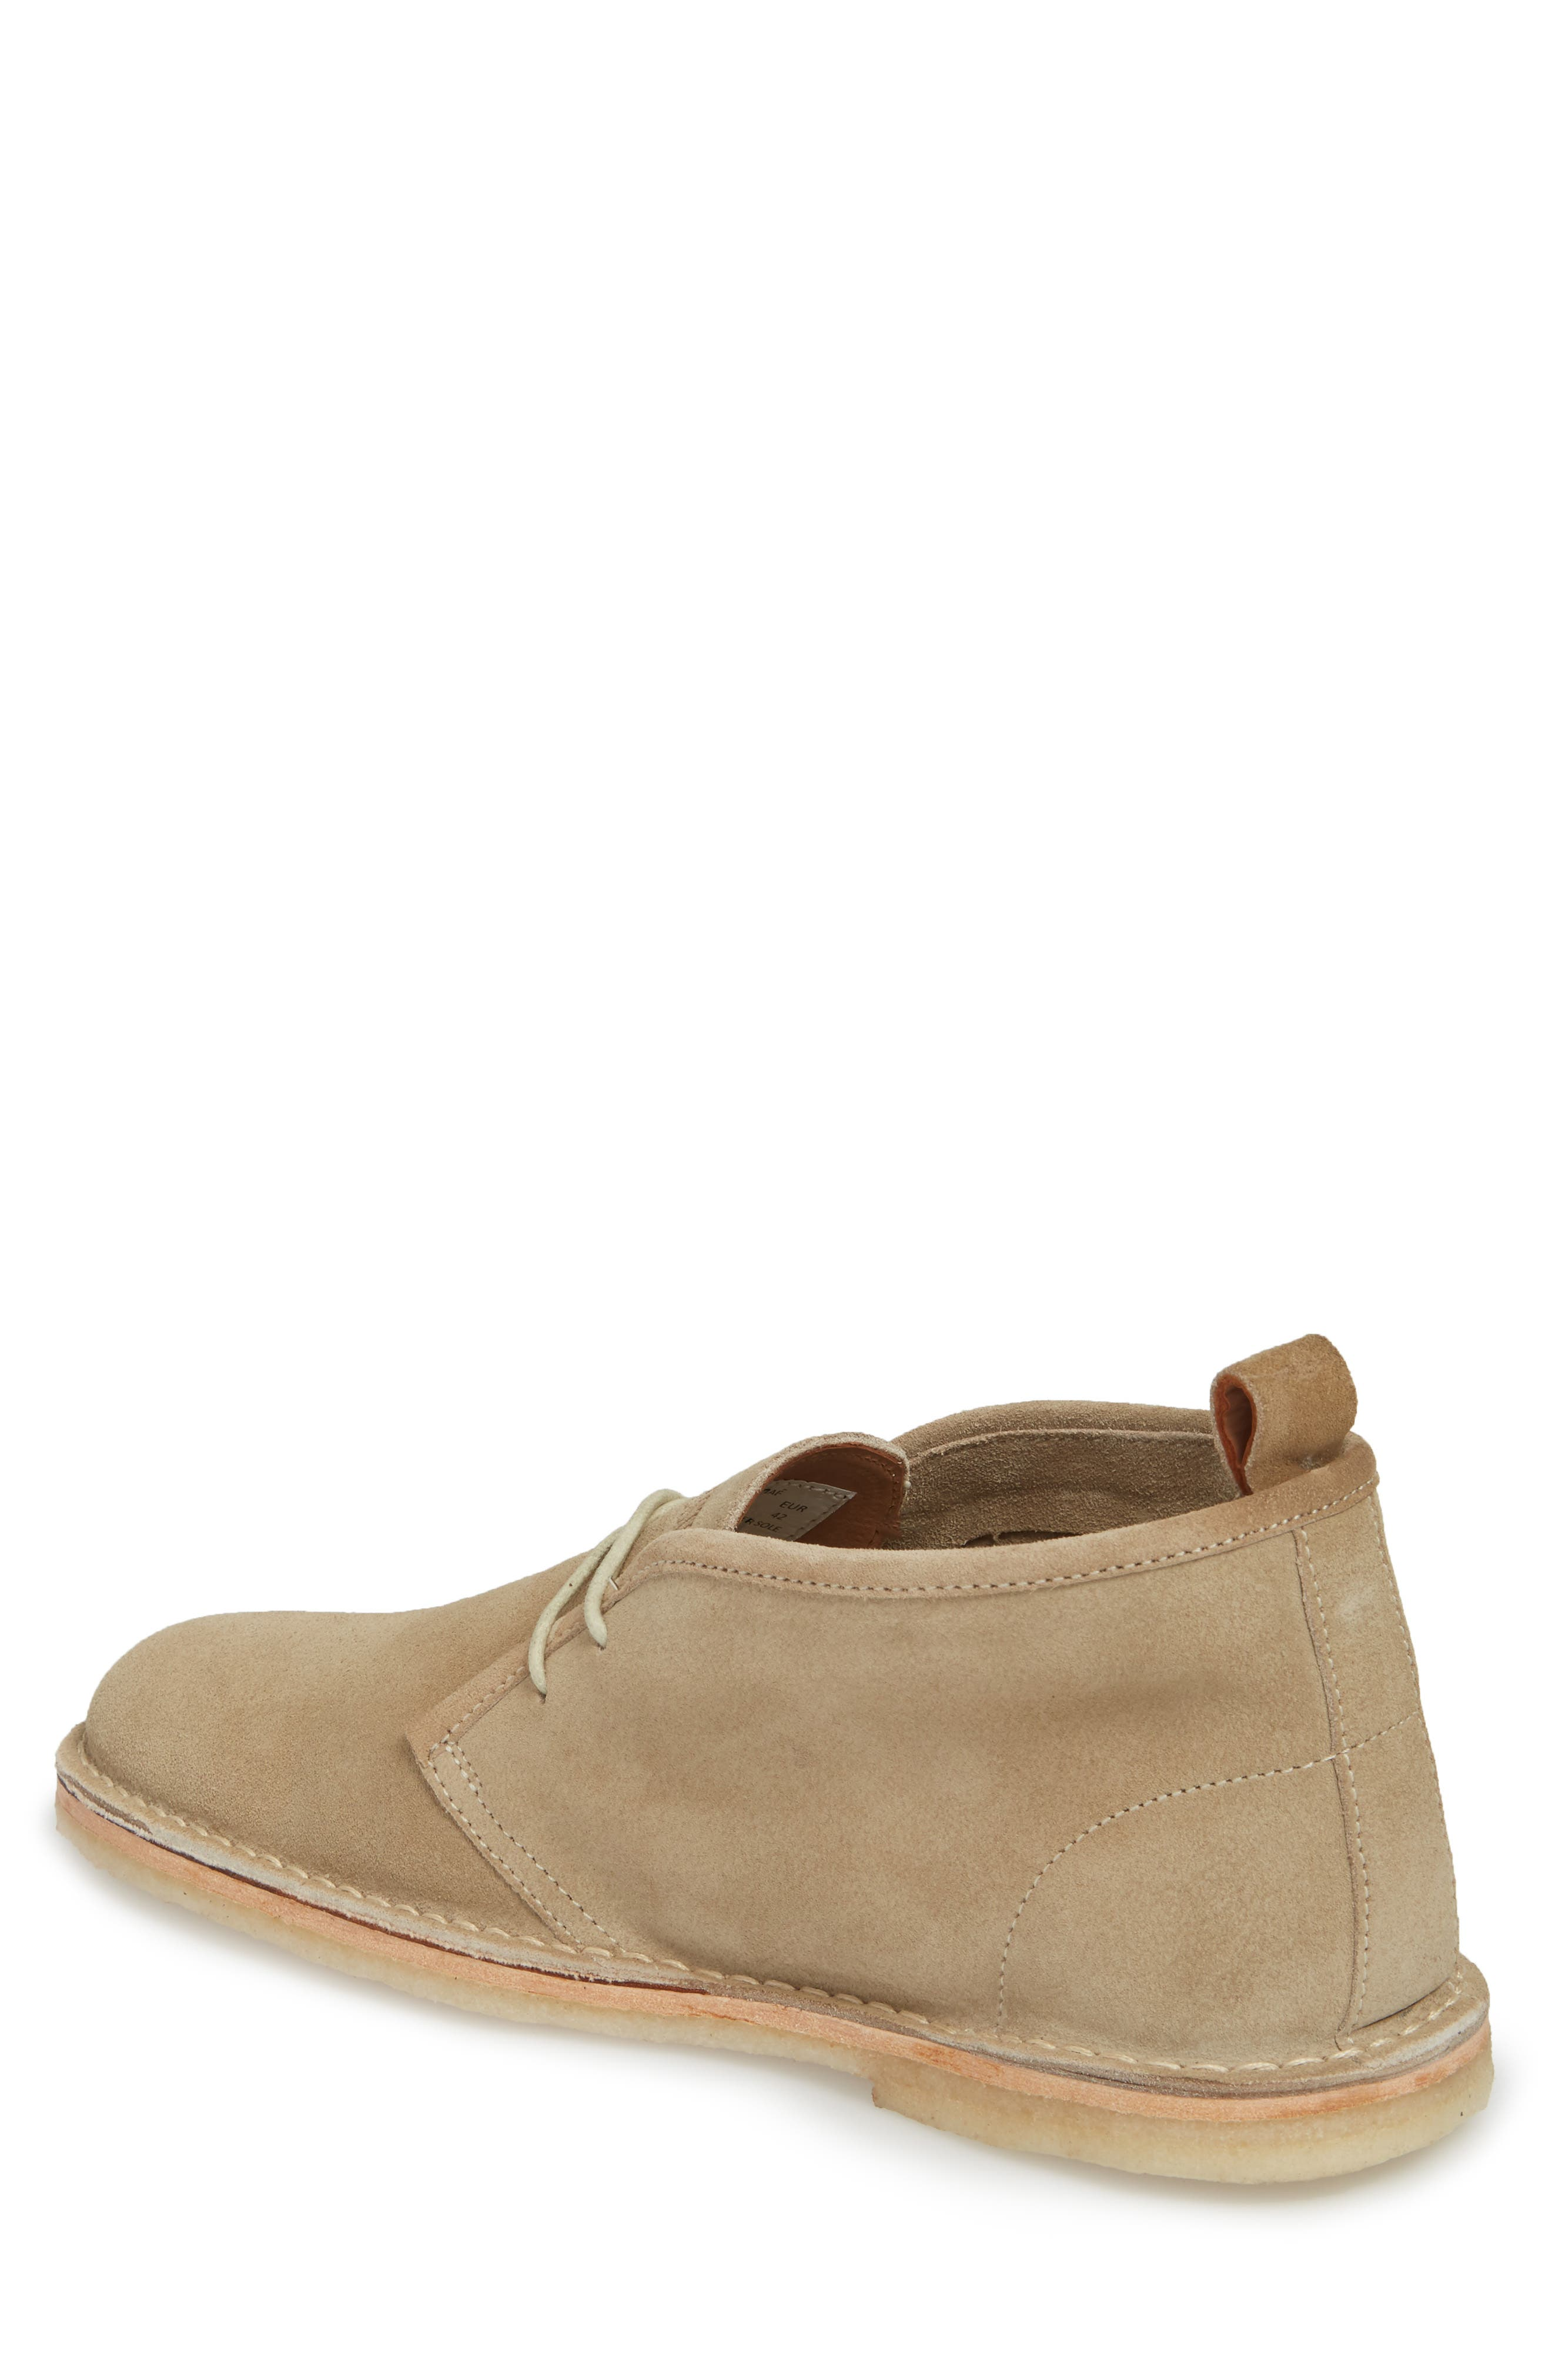 Stitchout Chukka Boot,                             Alternate thumbnail 2, color,                             Sand Suede